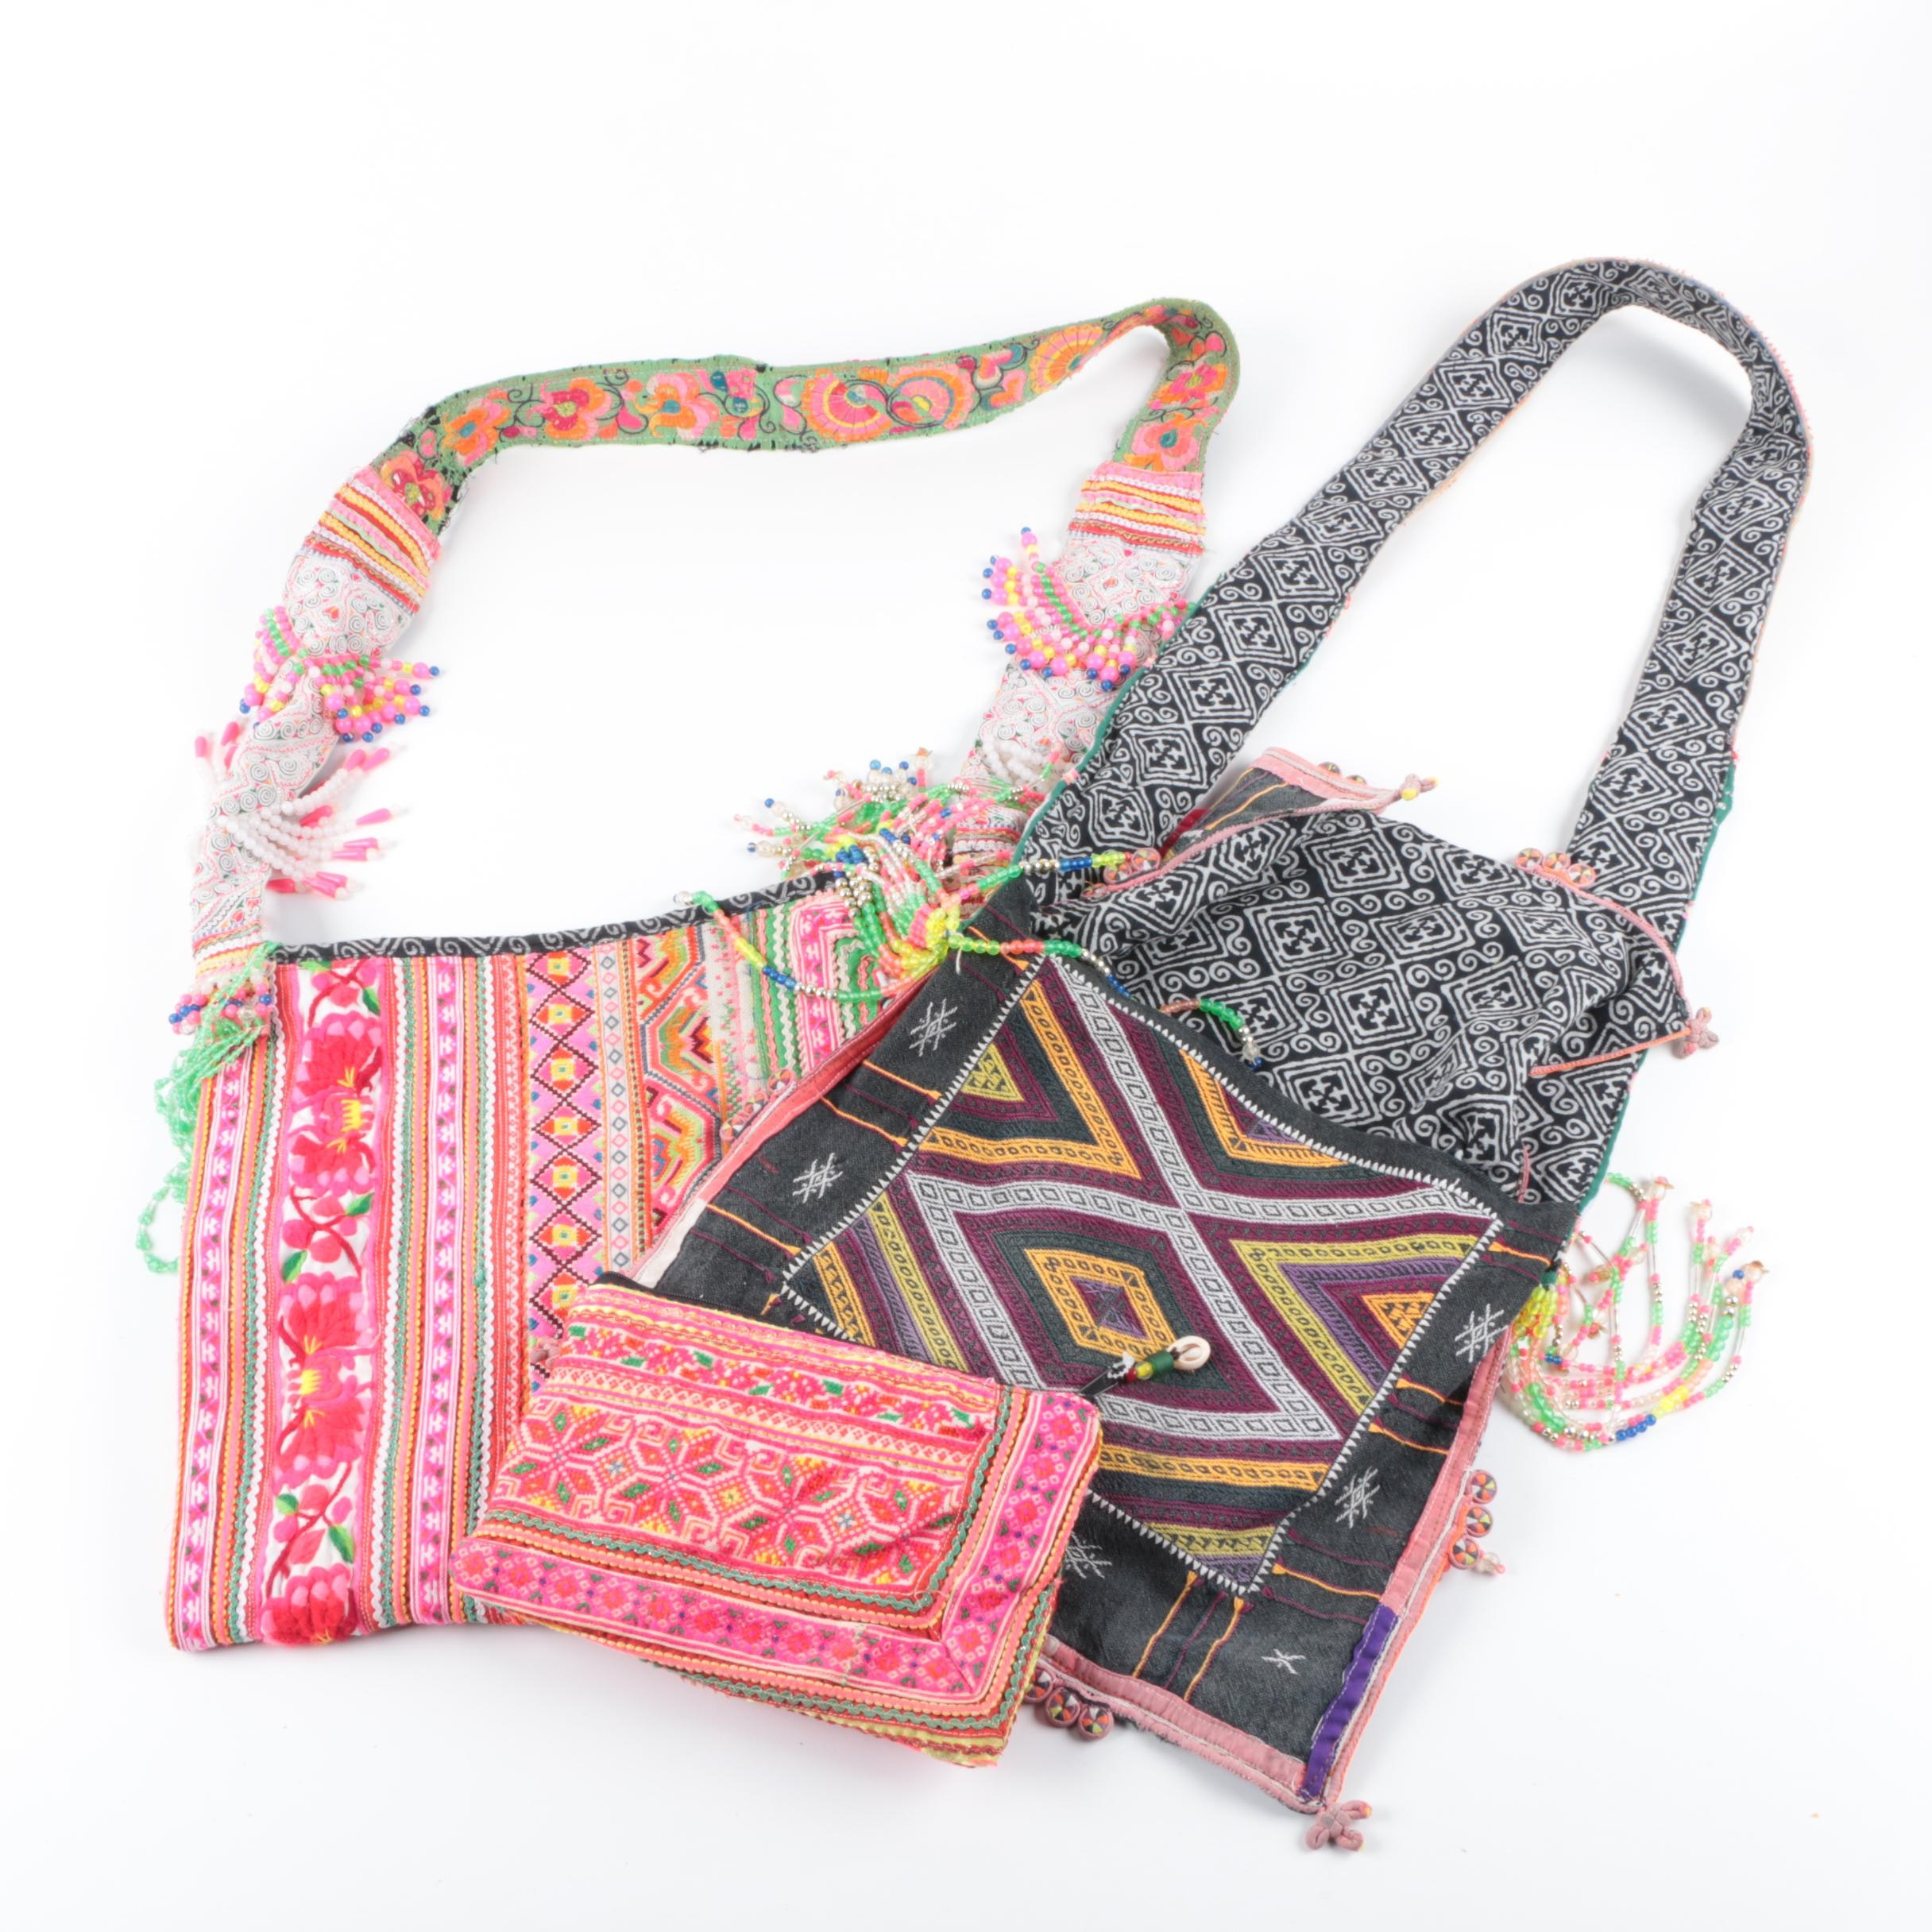 Patterned Fabric Handbags and a Pouch